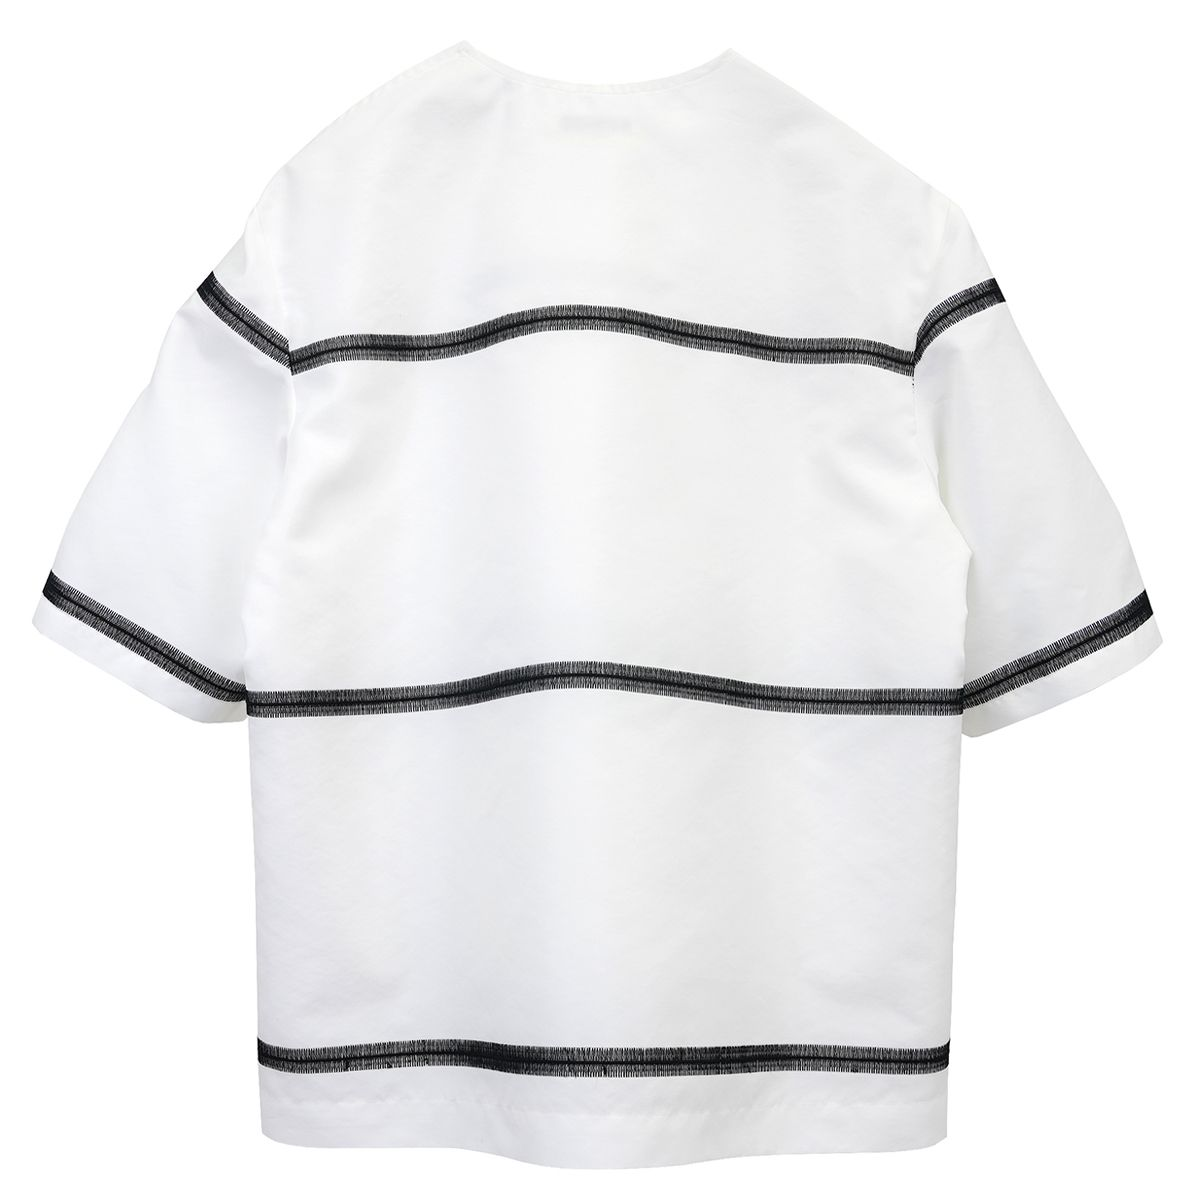 NAMACHEKO MIHI SHIRT / 9037 : OPTICAL WHITE-BLACK EMBRO